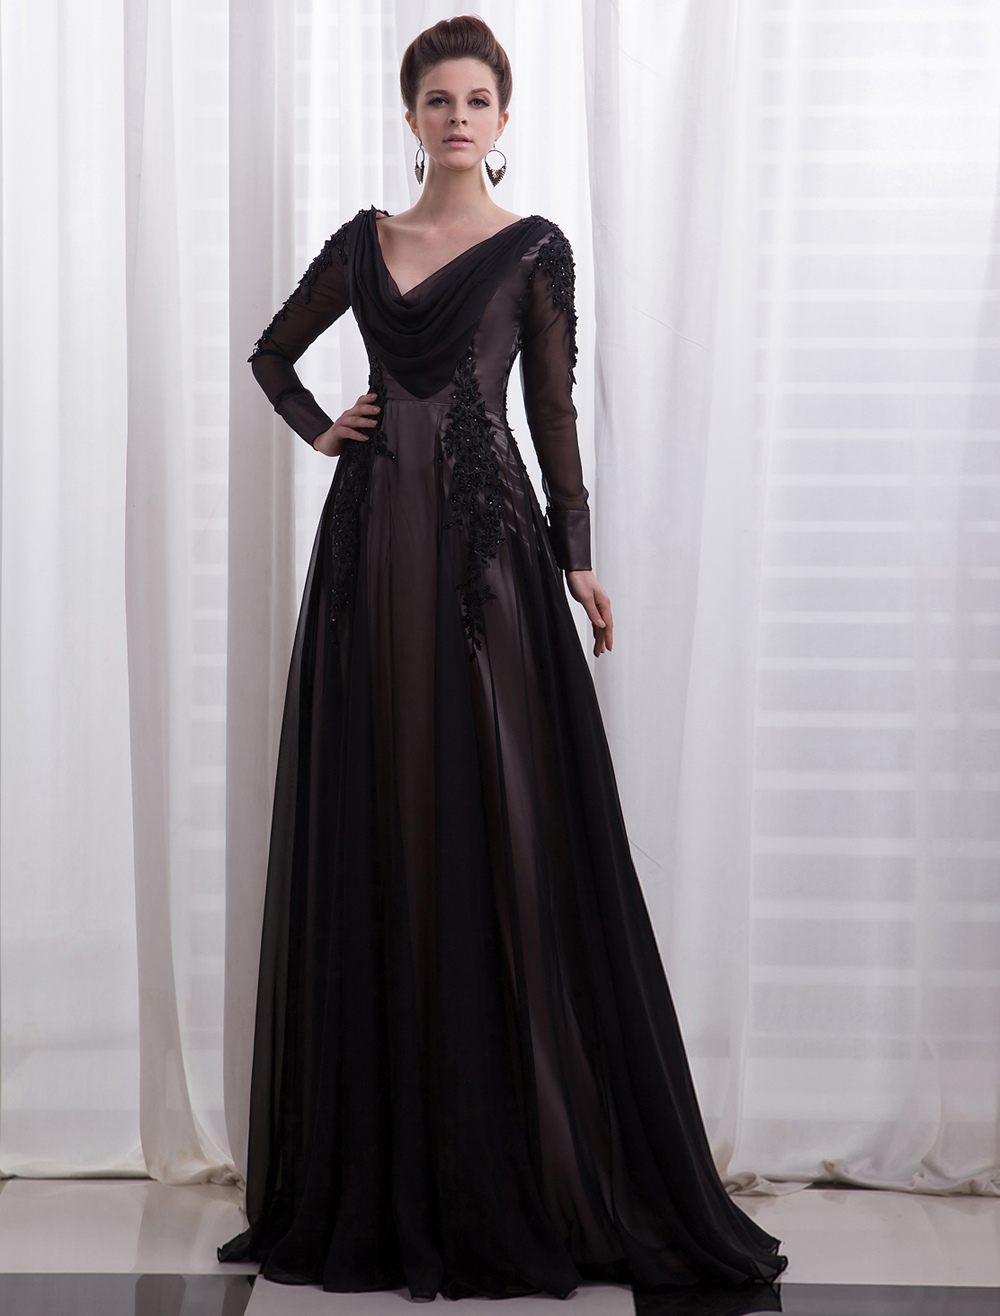 Black Evening Dress Deep-V Sequins Mesh Chiffon Prom Dress Milanoo